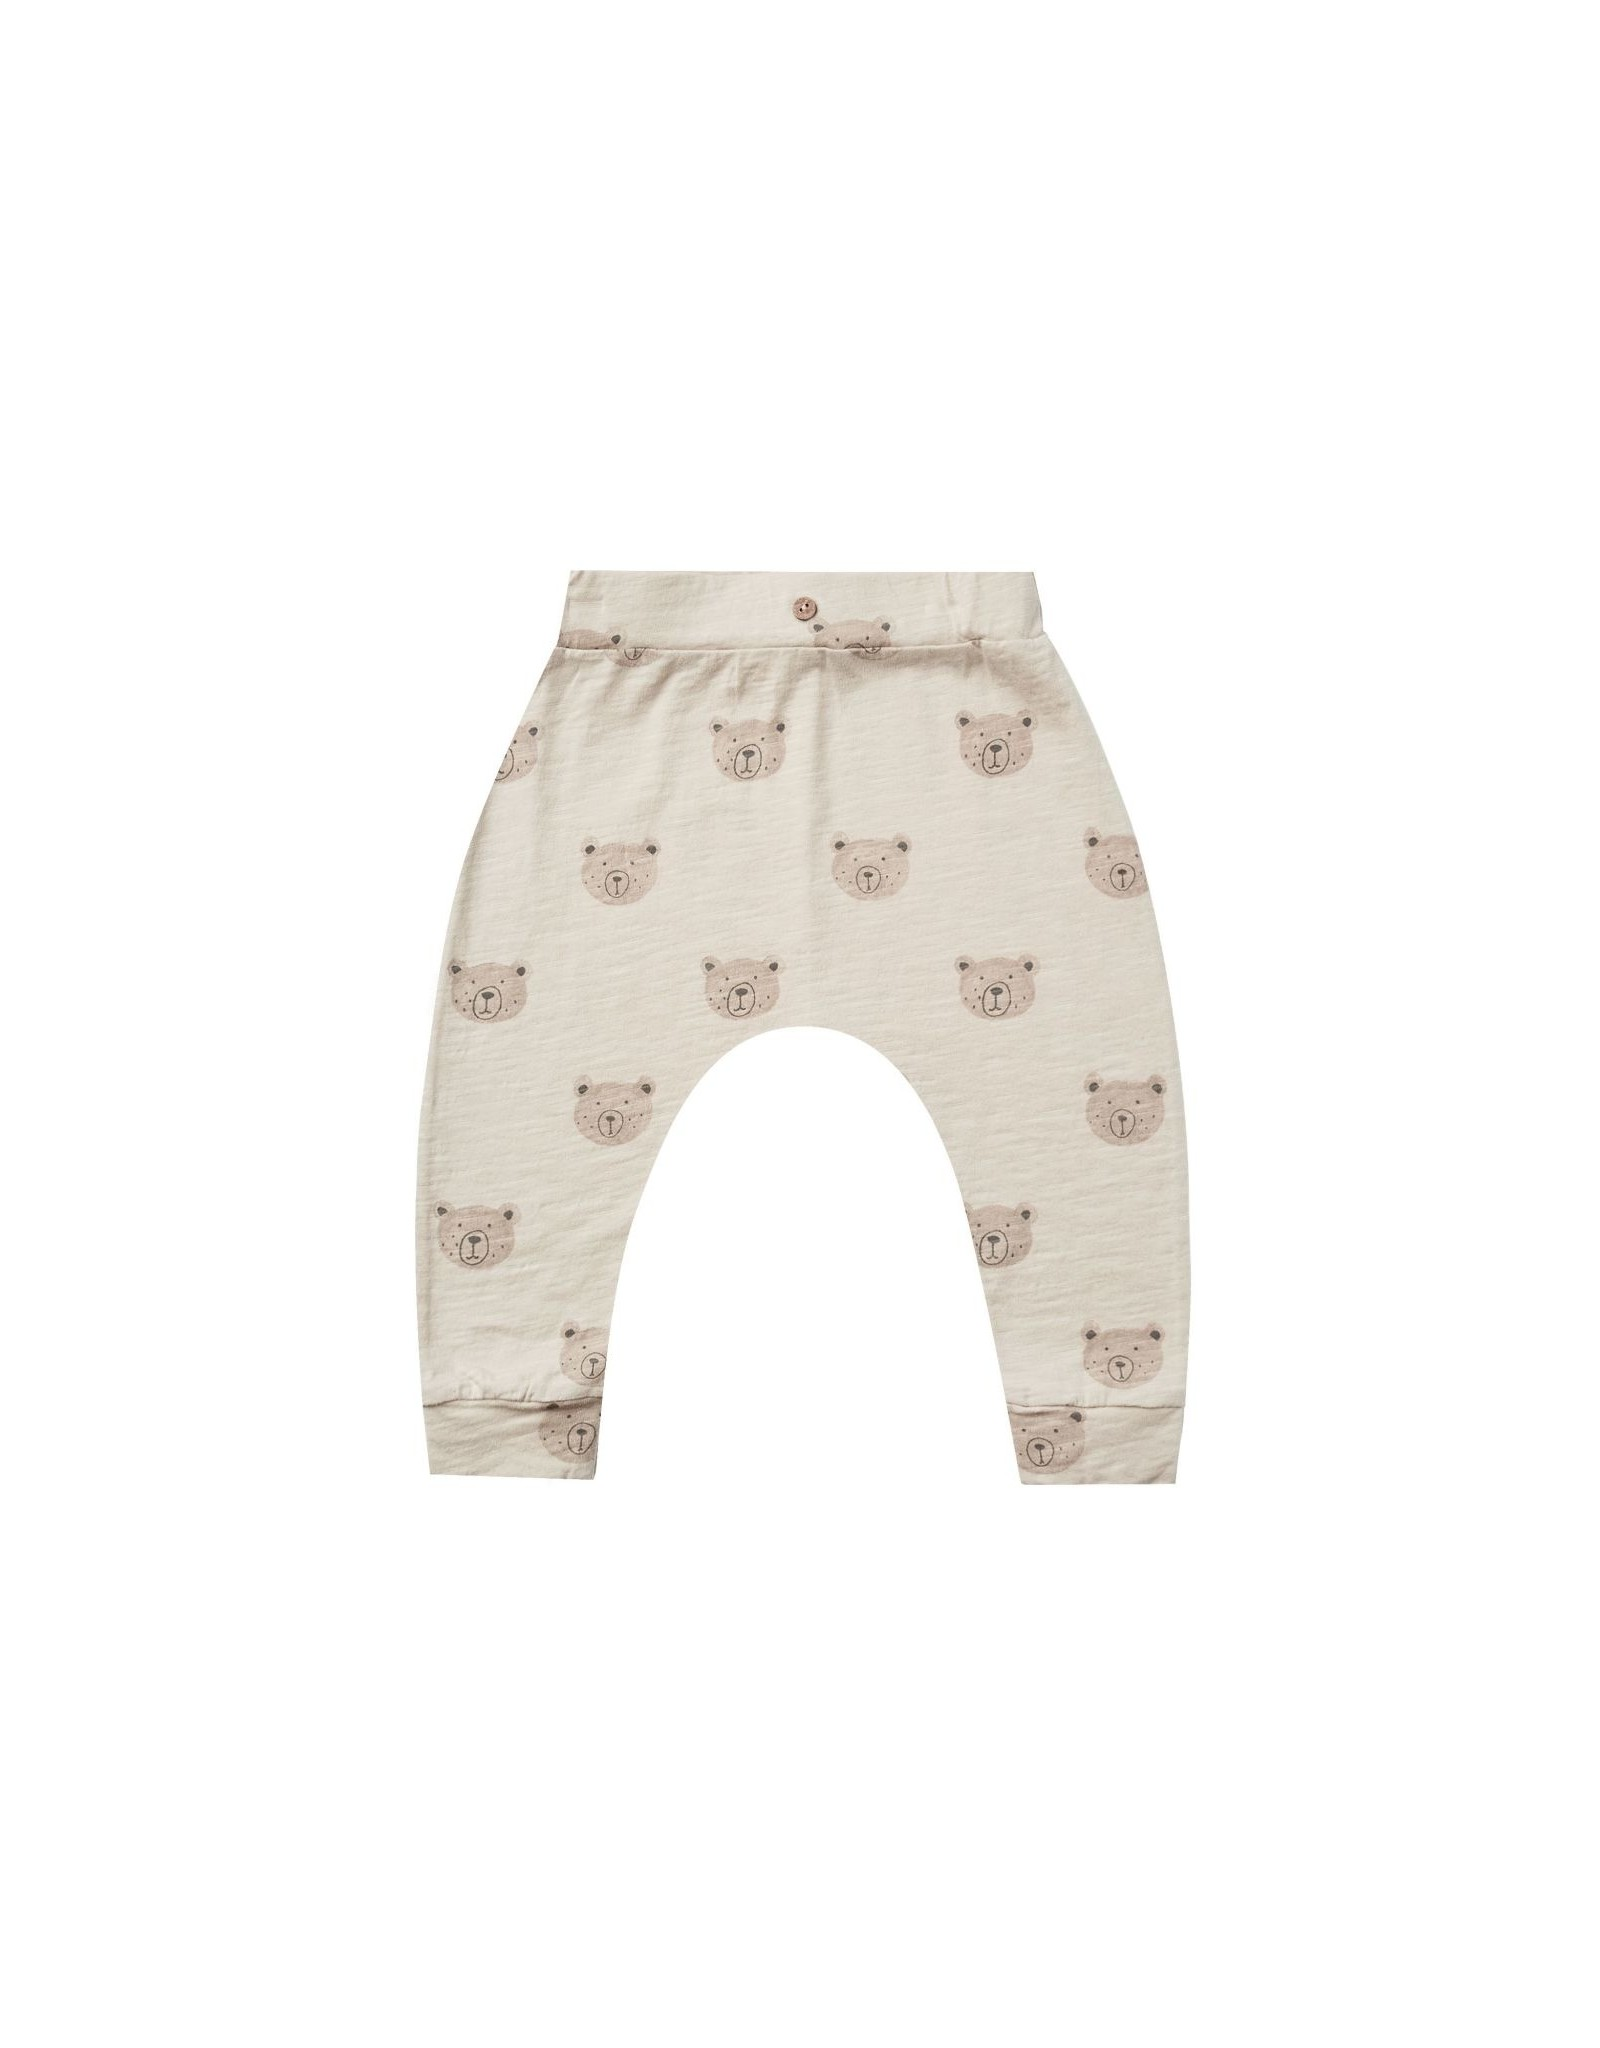 Rylee and Cru slouch pant- bears